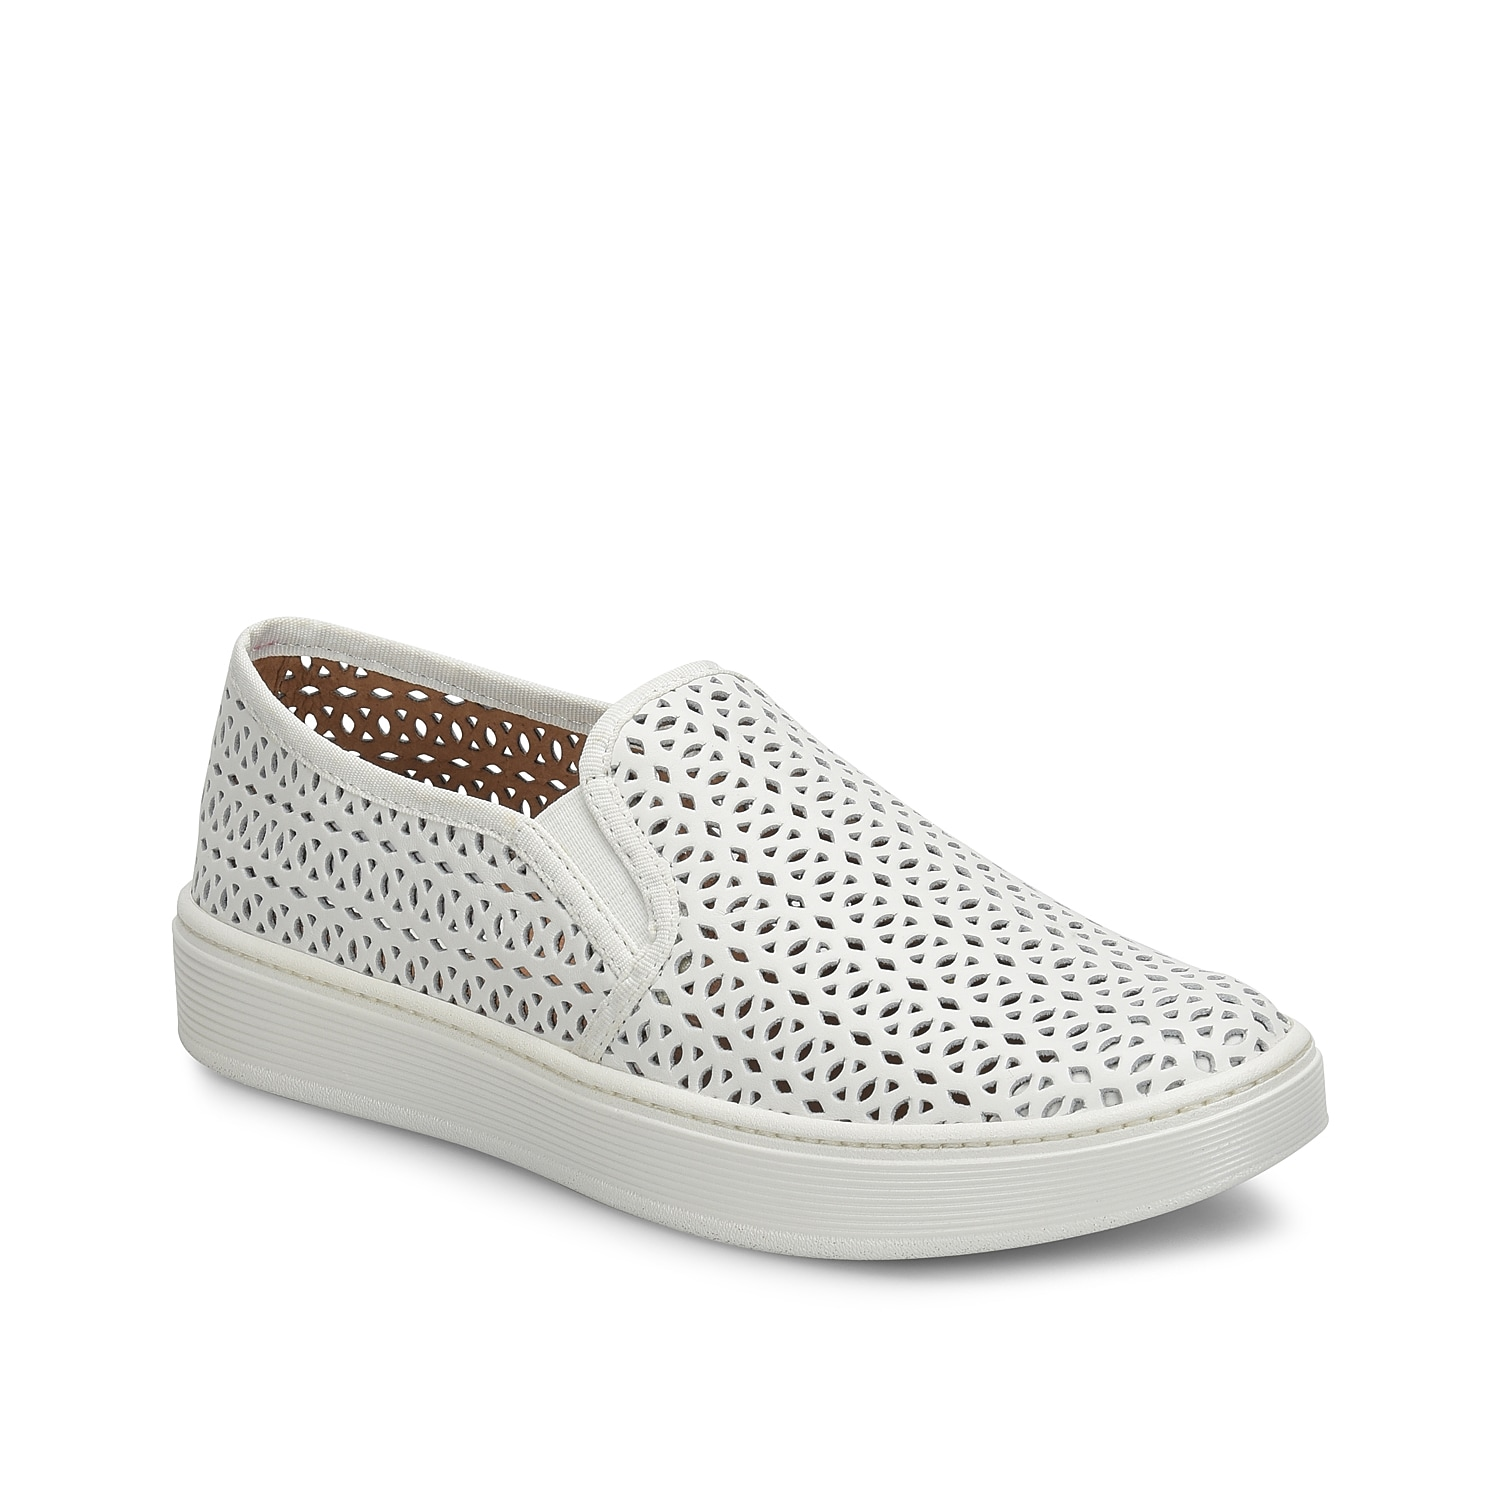 The Somers II sneaker from Sofft will add an extra-cool factor to your casual look while stay comfortable. With a supportive footbed, these leather laser cut slip-ons will never let you down.